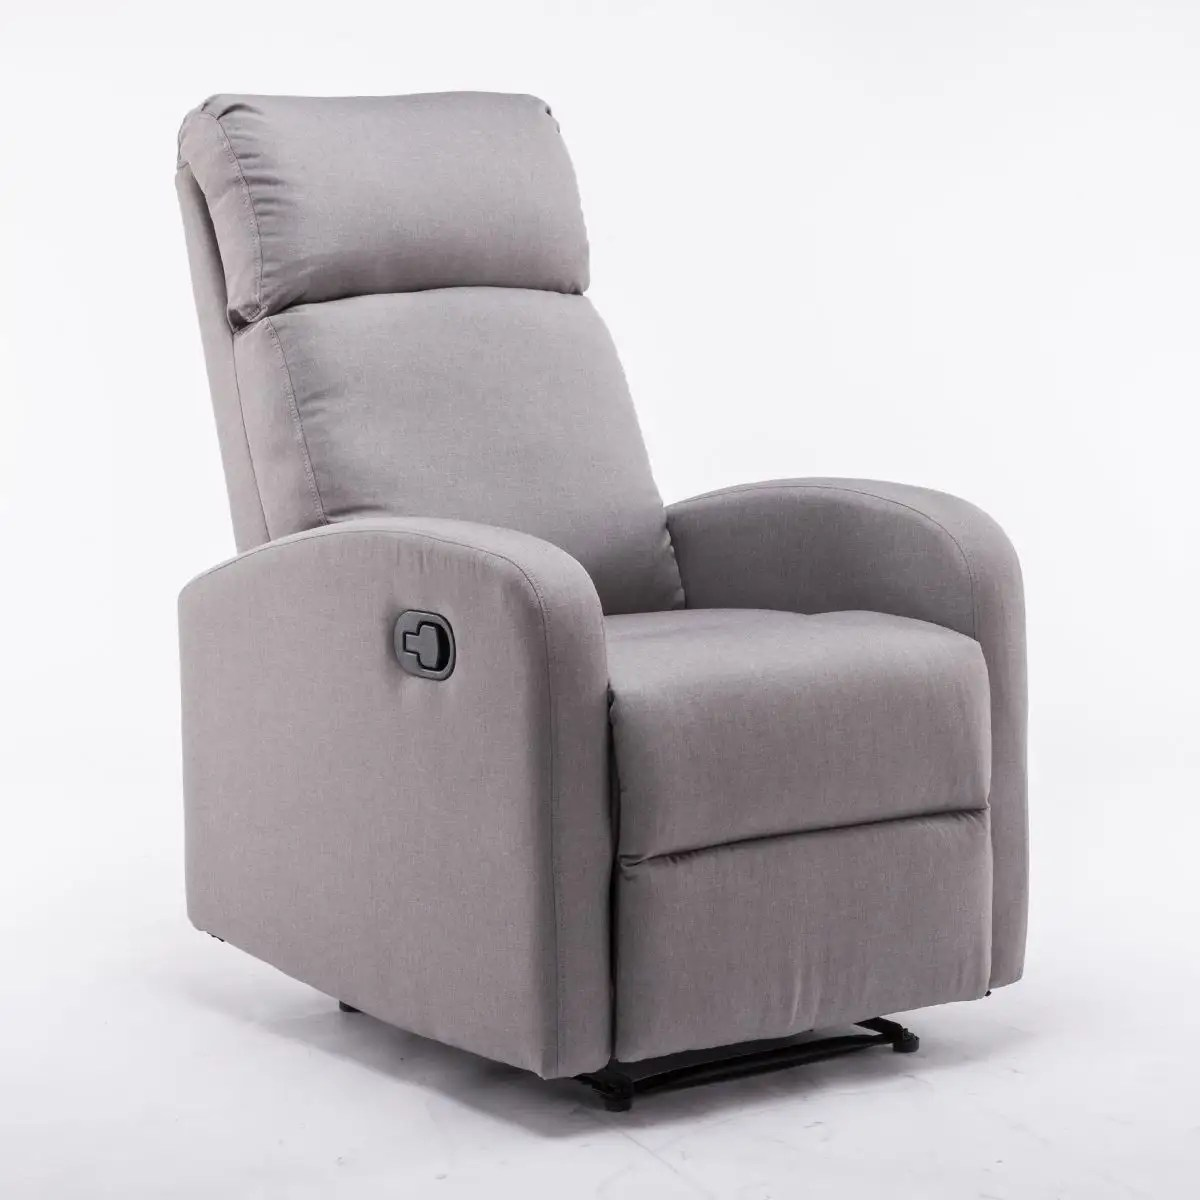 Https Www Linenchest Com Fr Ca Fauteuil Inclinable Manuel Irena